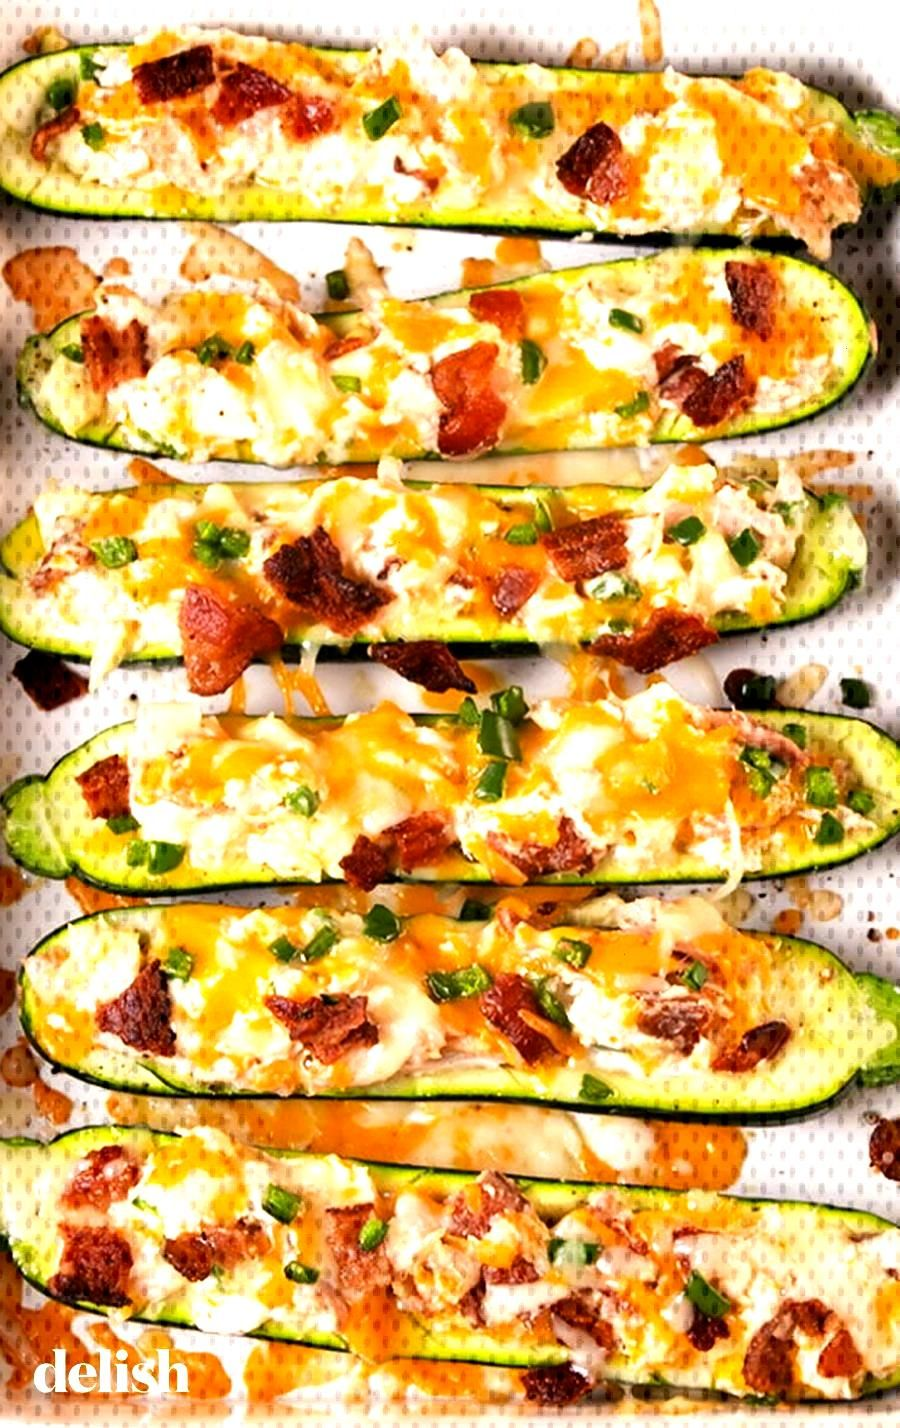 Jalapeño Popper Zucchini Boats Jalapeño Popper Zucchini Boats   Delish Low-Carb Recipes + Meals Y